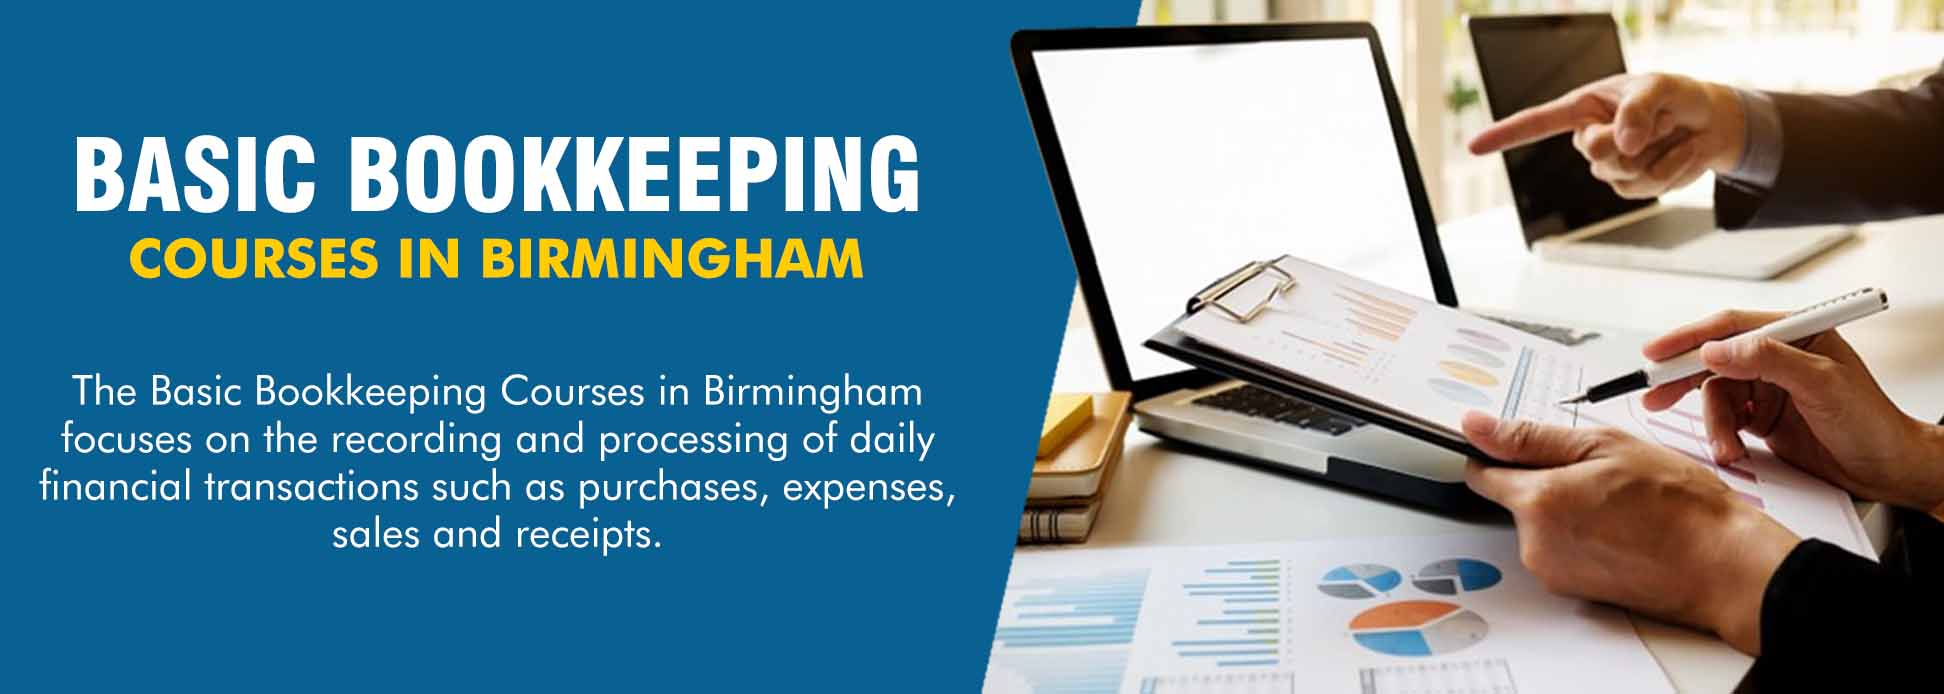 basic-bookkeeping-courses-in-birmingham